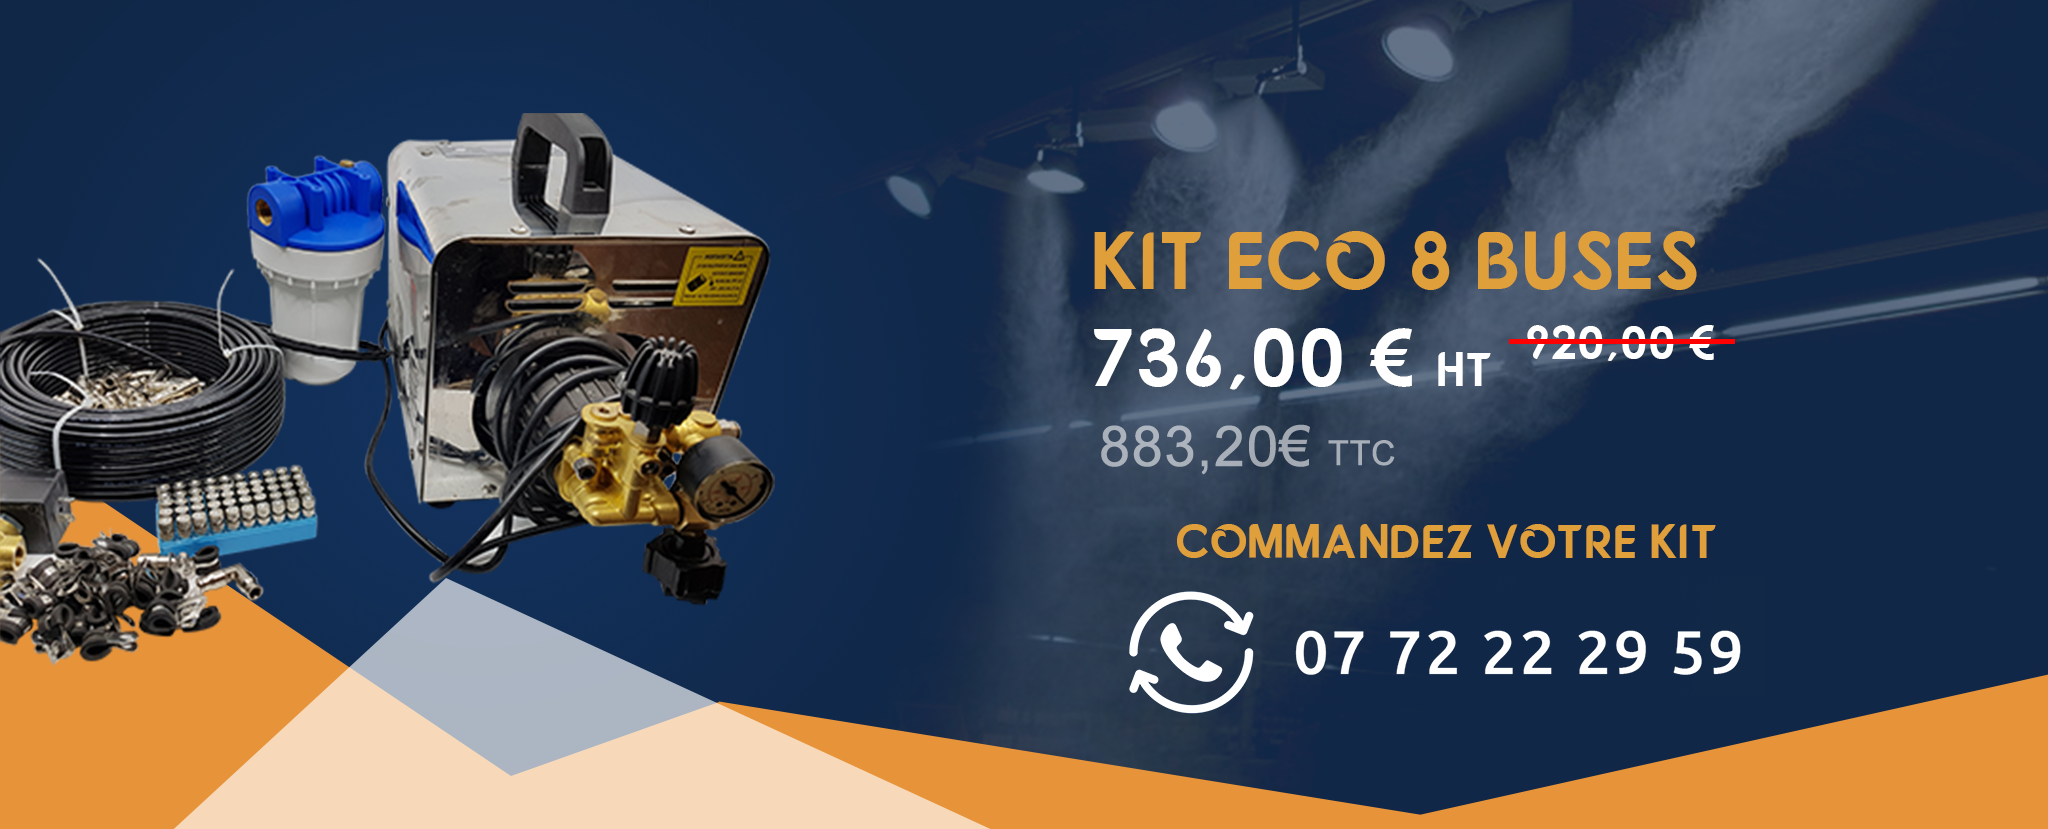 Kit-Eco-8-buses